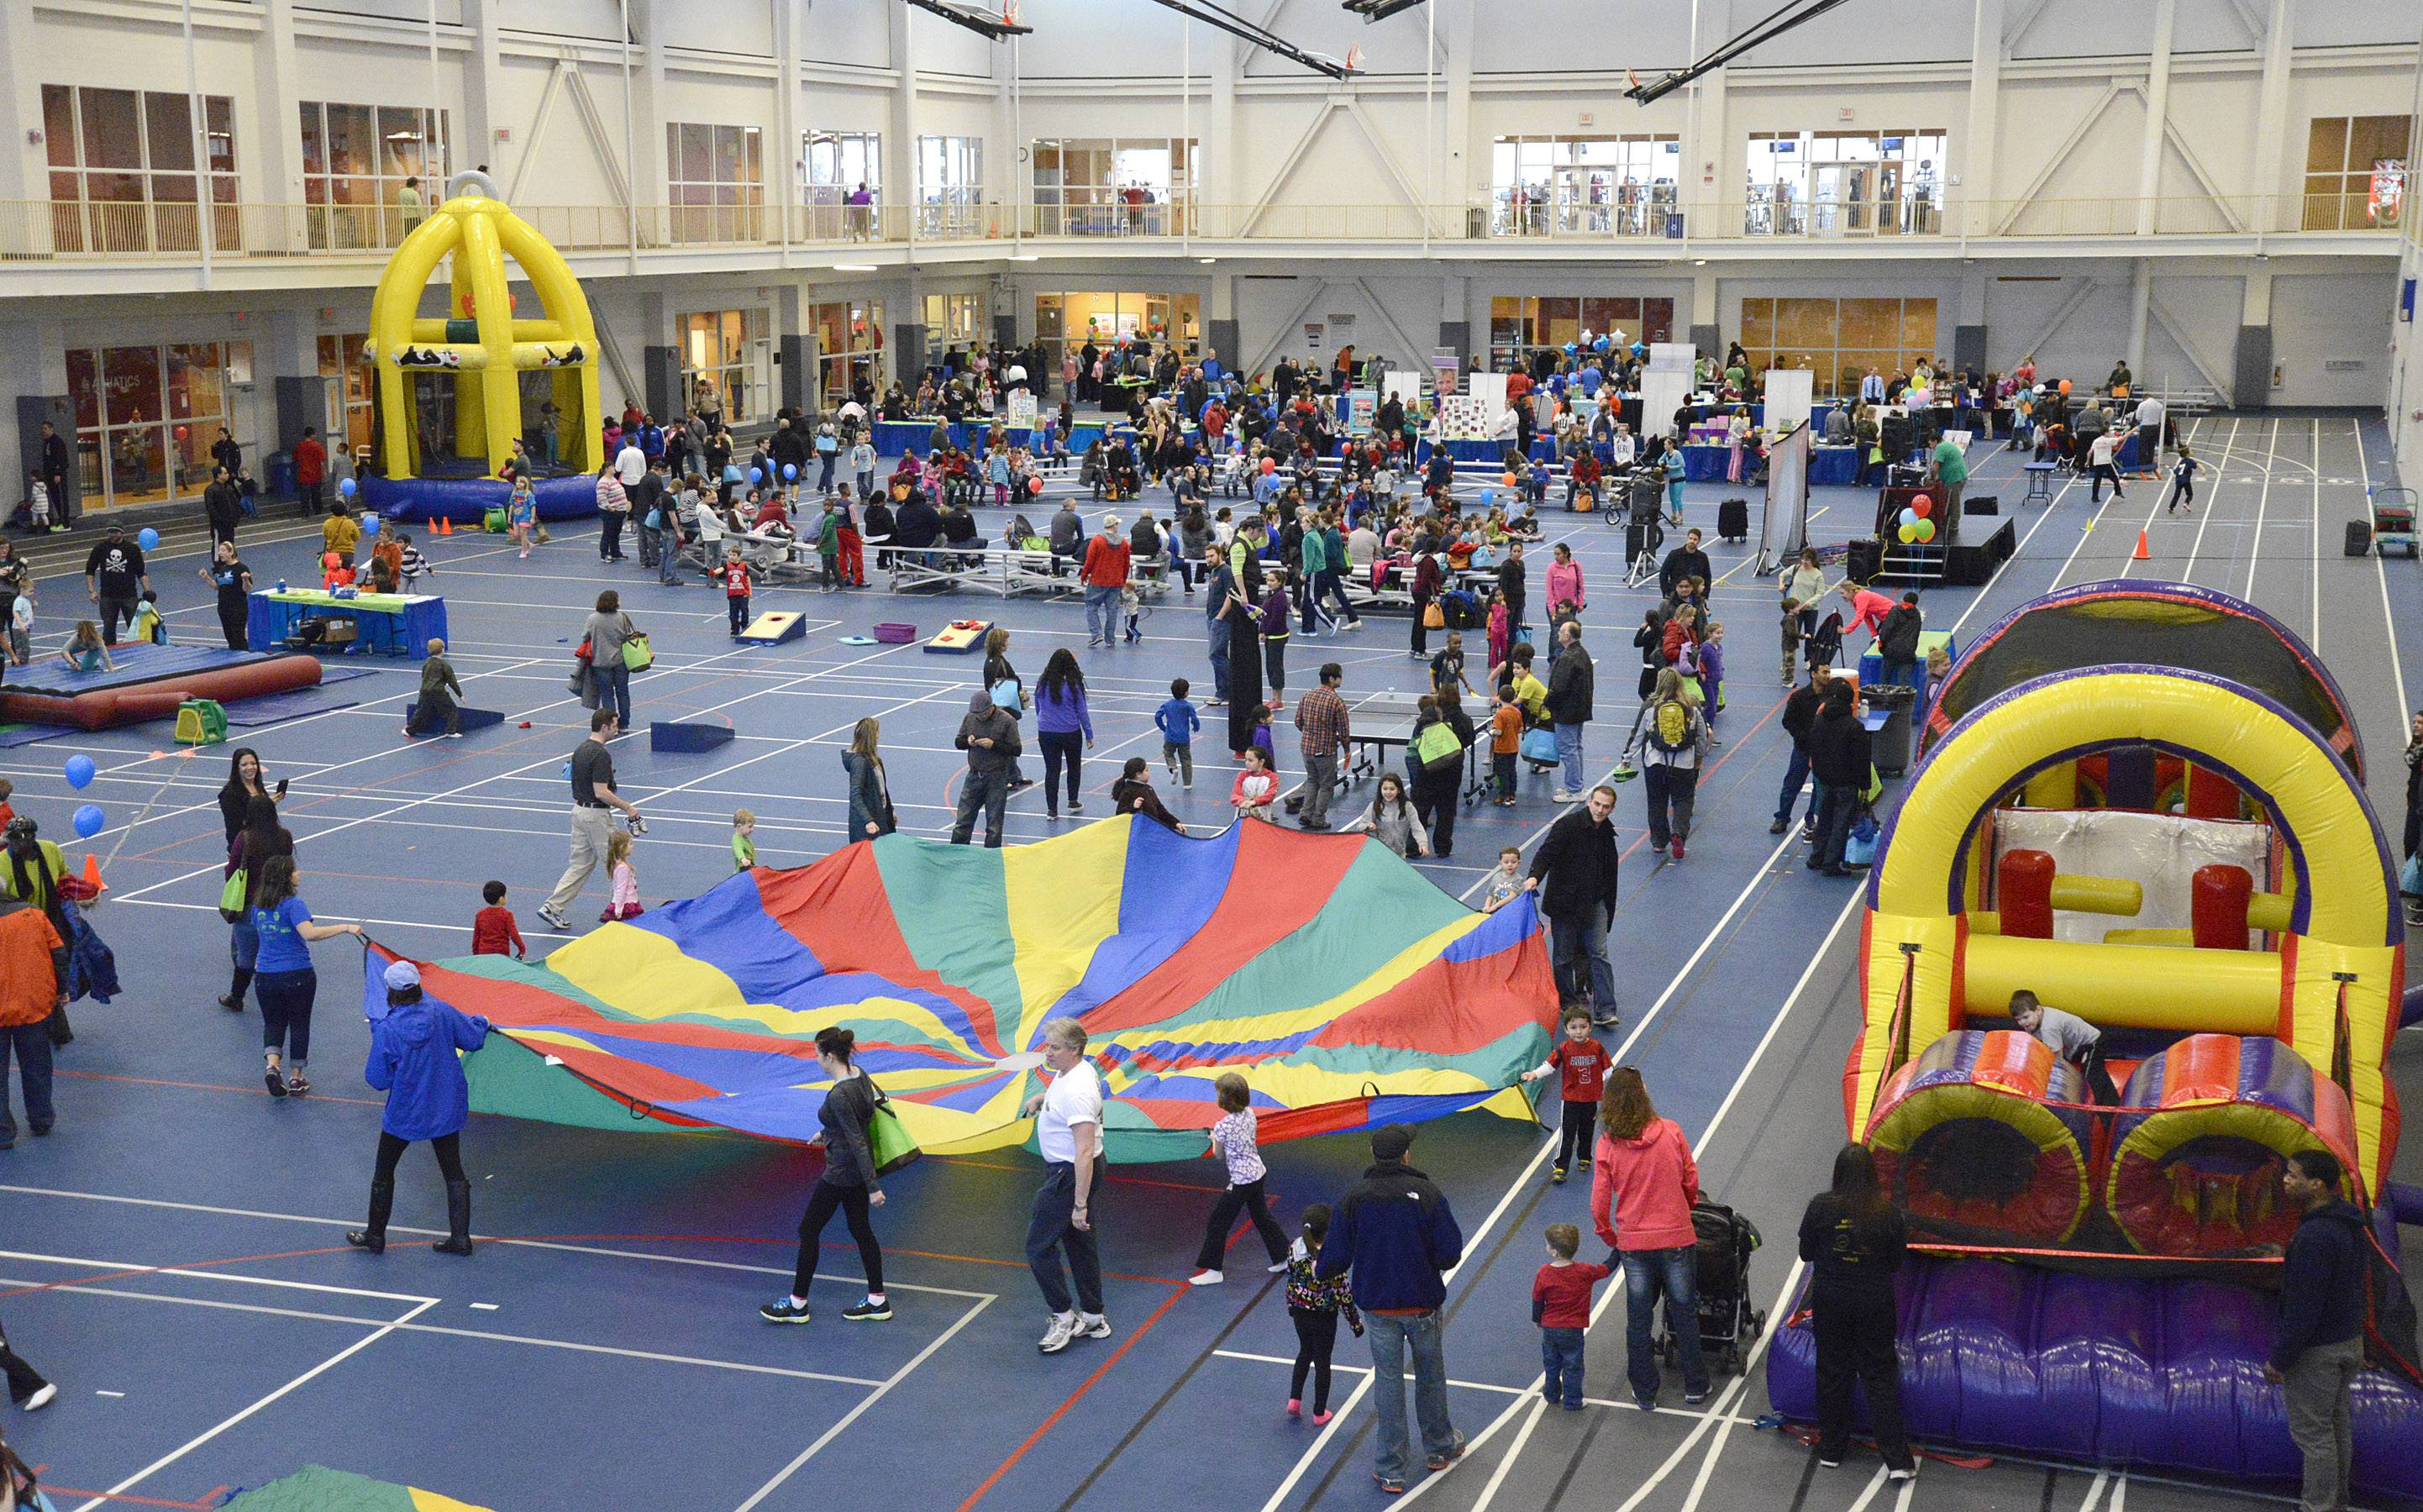 The annual Fitness Fun Fair for Kids at the Vaughn Athletic Center in Aurora filled the field house with vendors and activities for families.